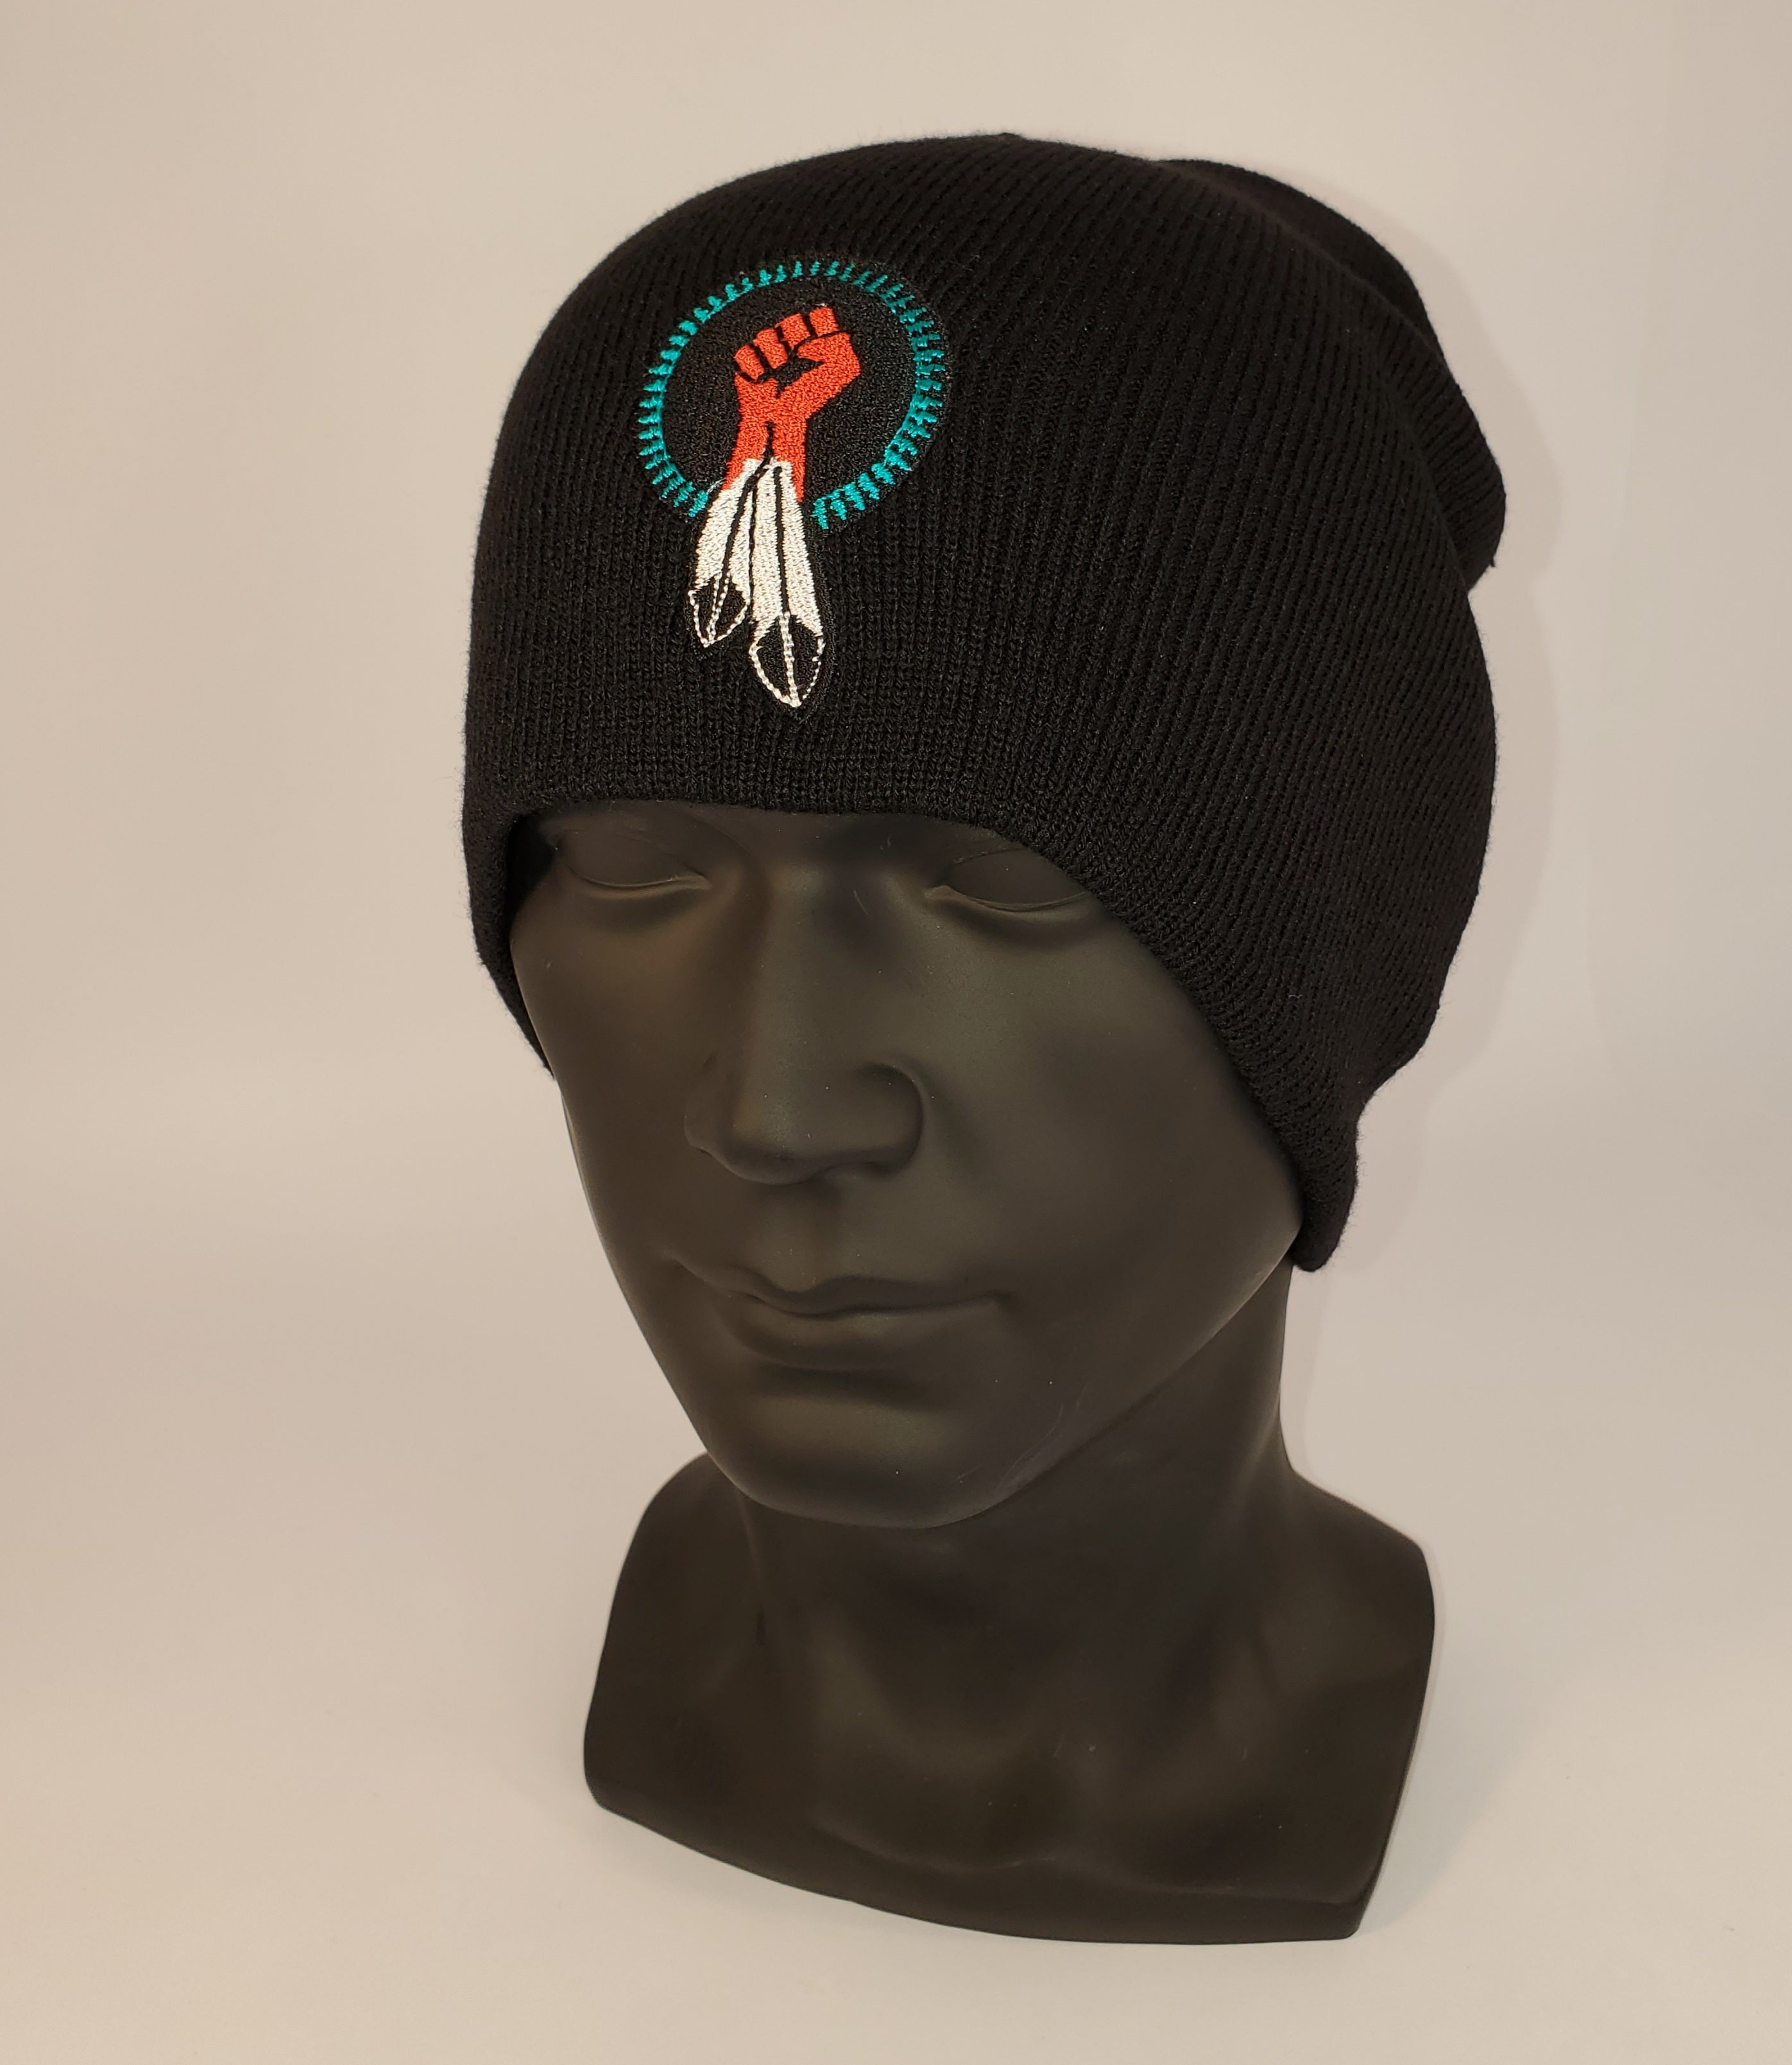 N8V MOVEMENT beanie embroidered